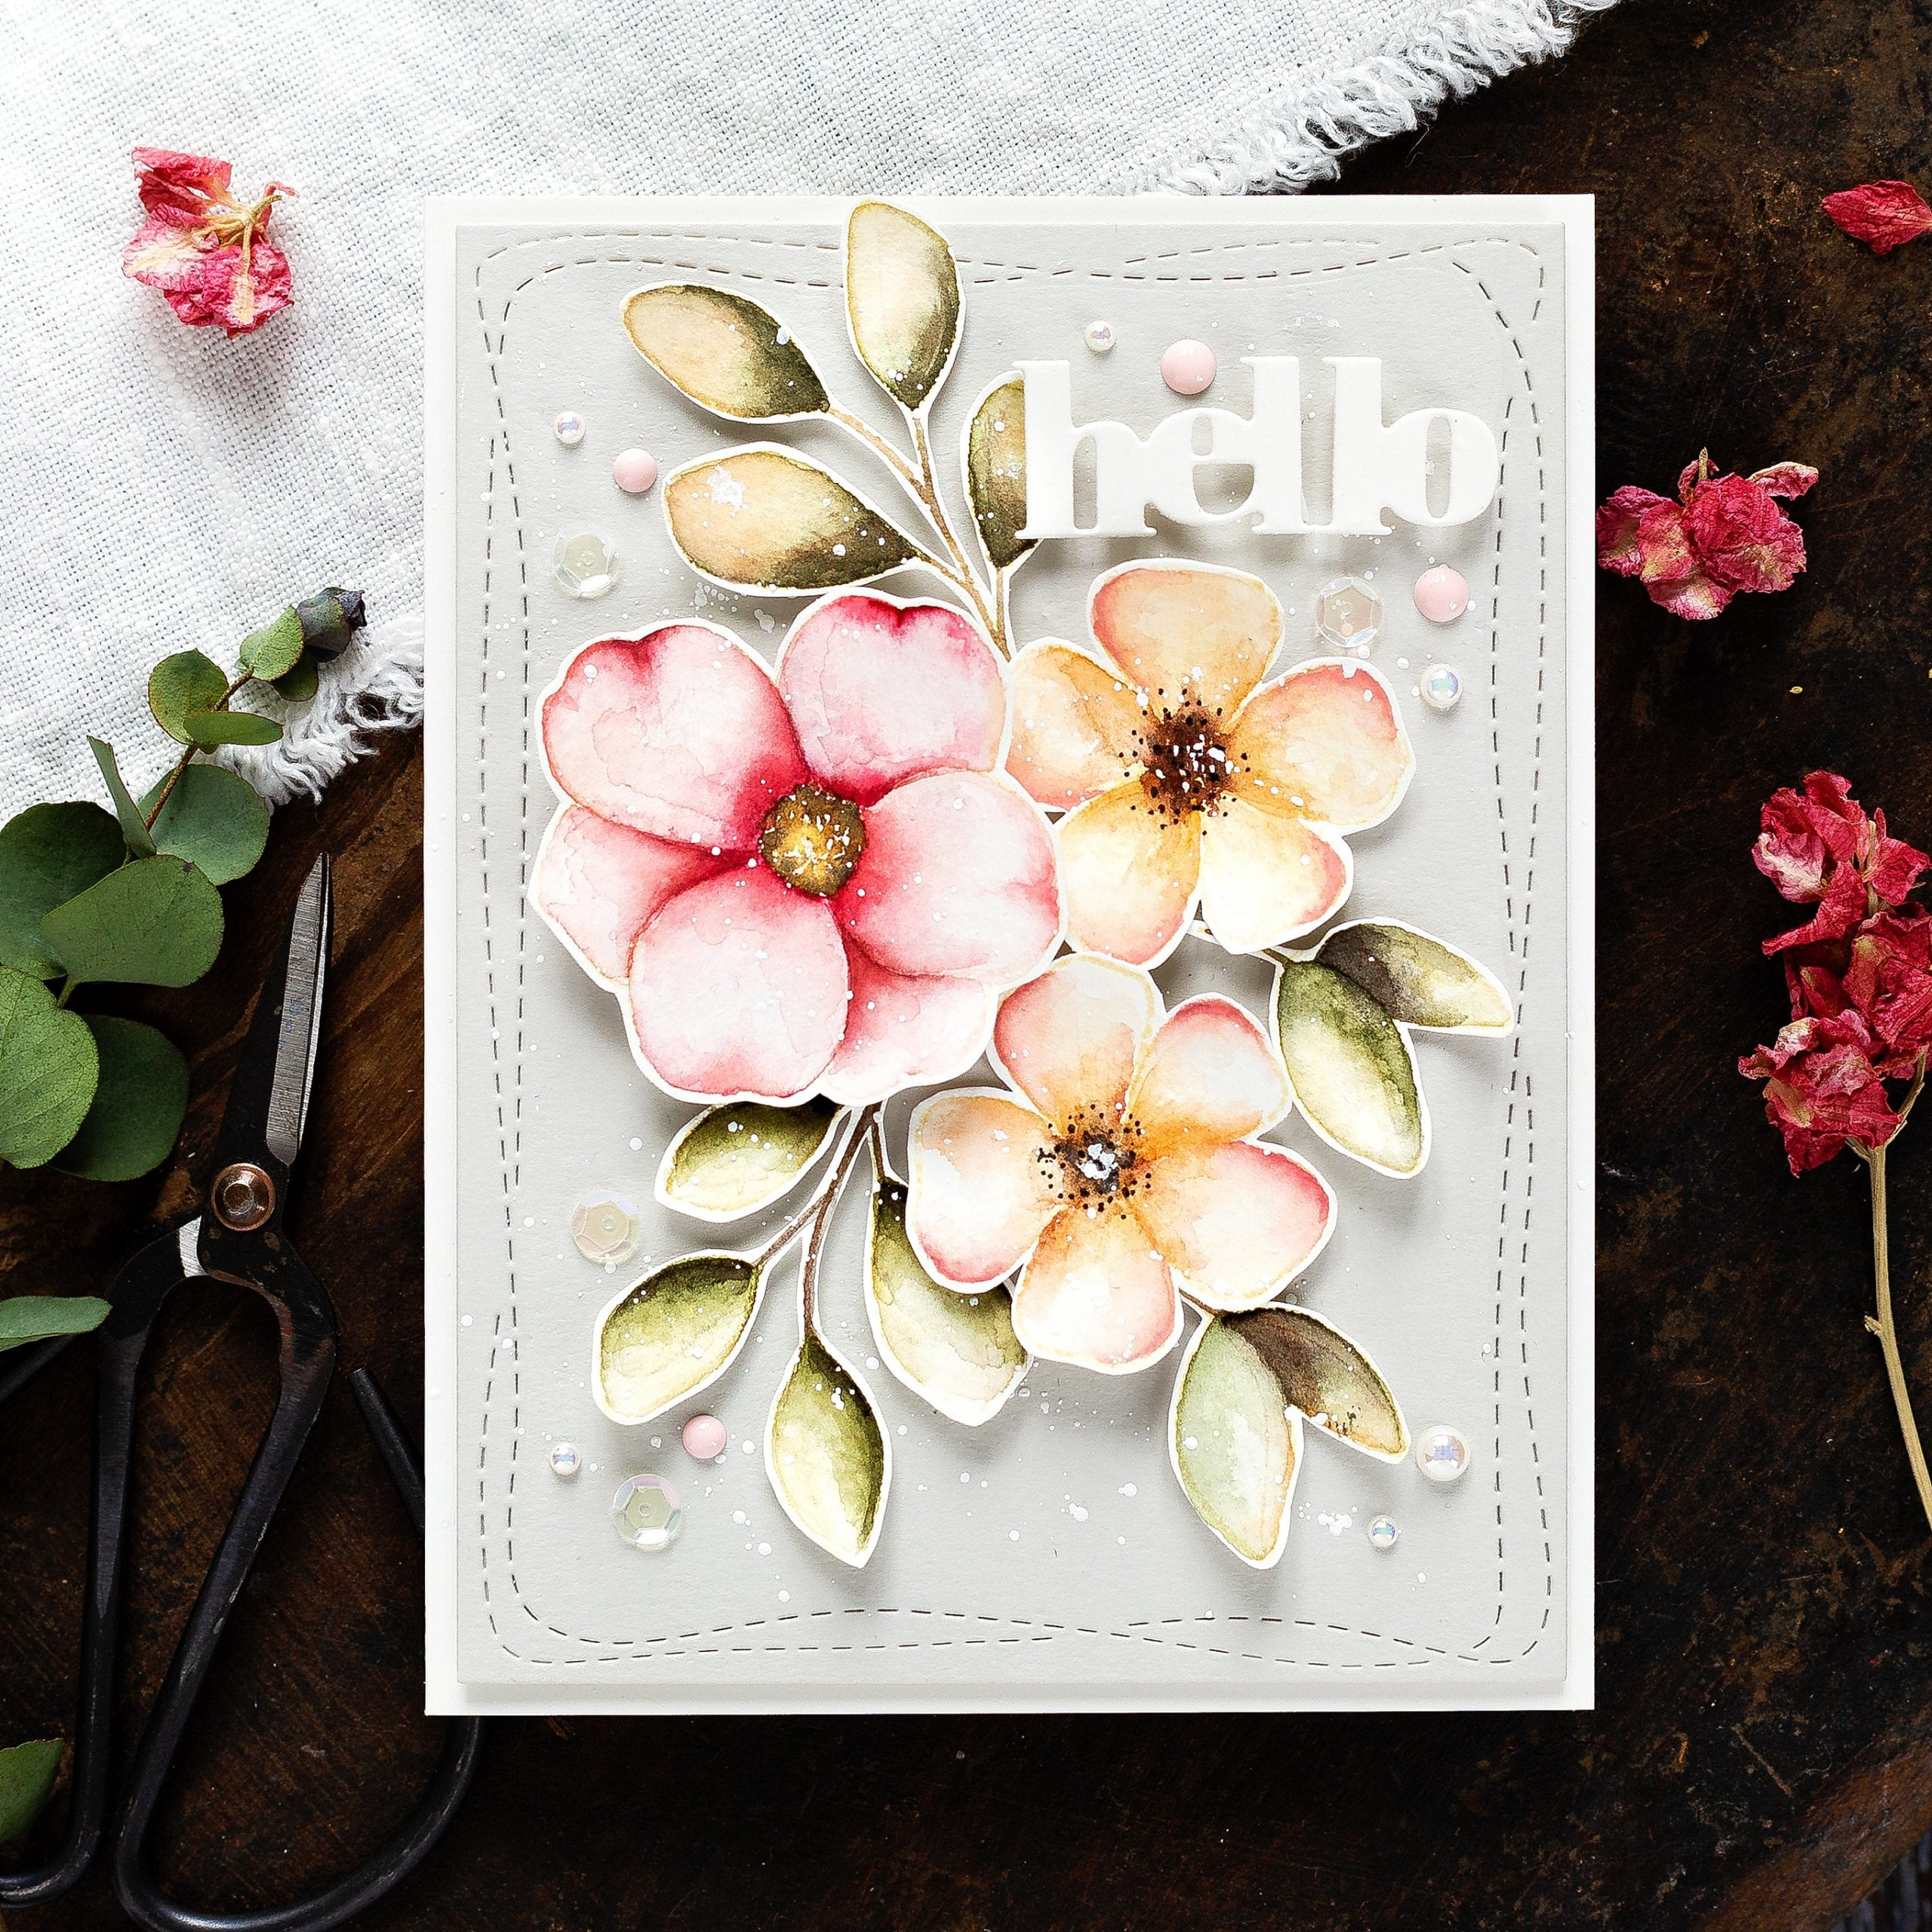 How to arrange florals easily on a handmade card by Debby Hughes using supplies from Simon Says Stamp #watercolor #homemade